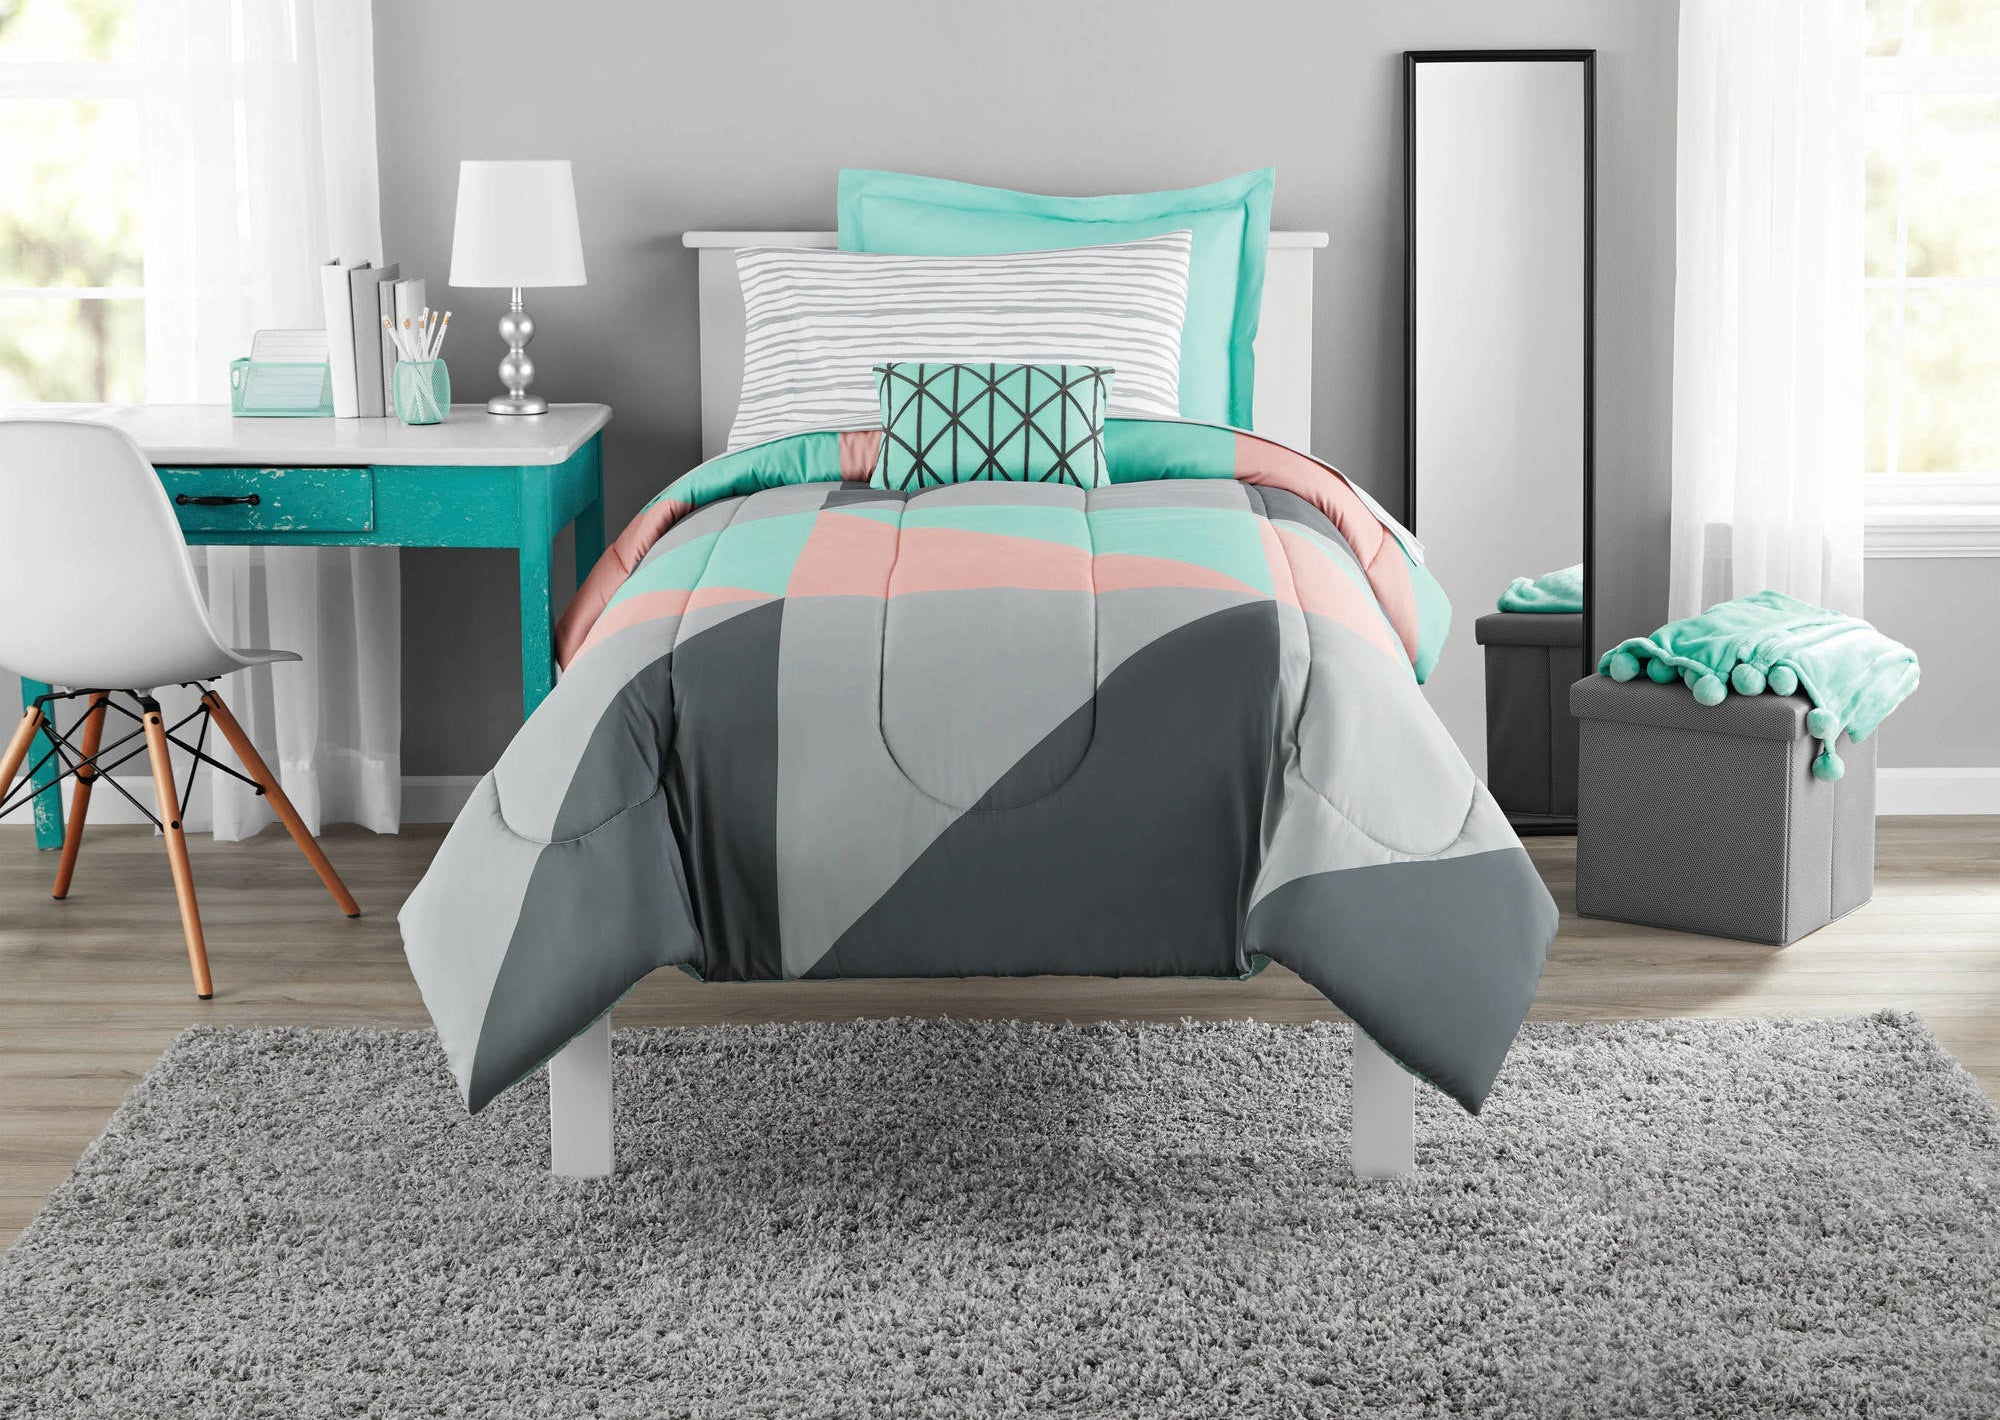 Gray, teal and pink bed in a bag set